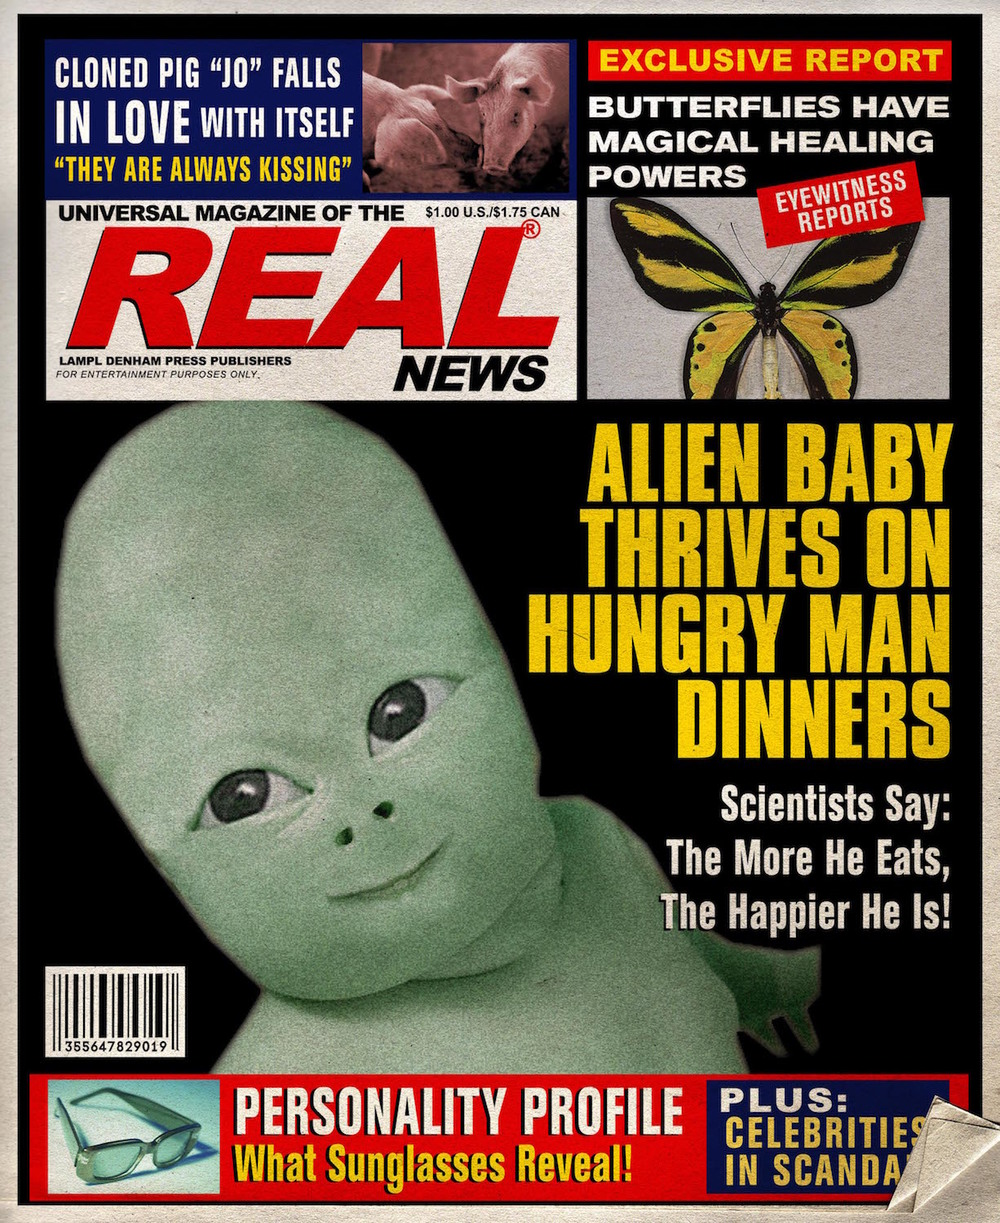 tabloid newspaper hungryman.jpg